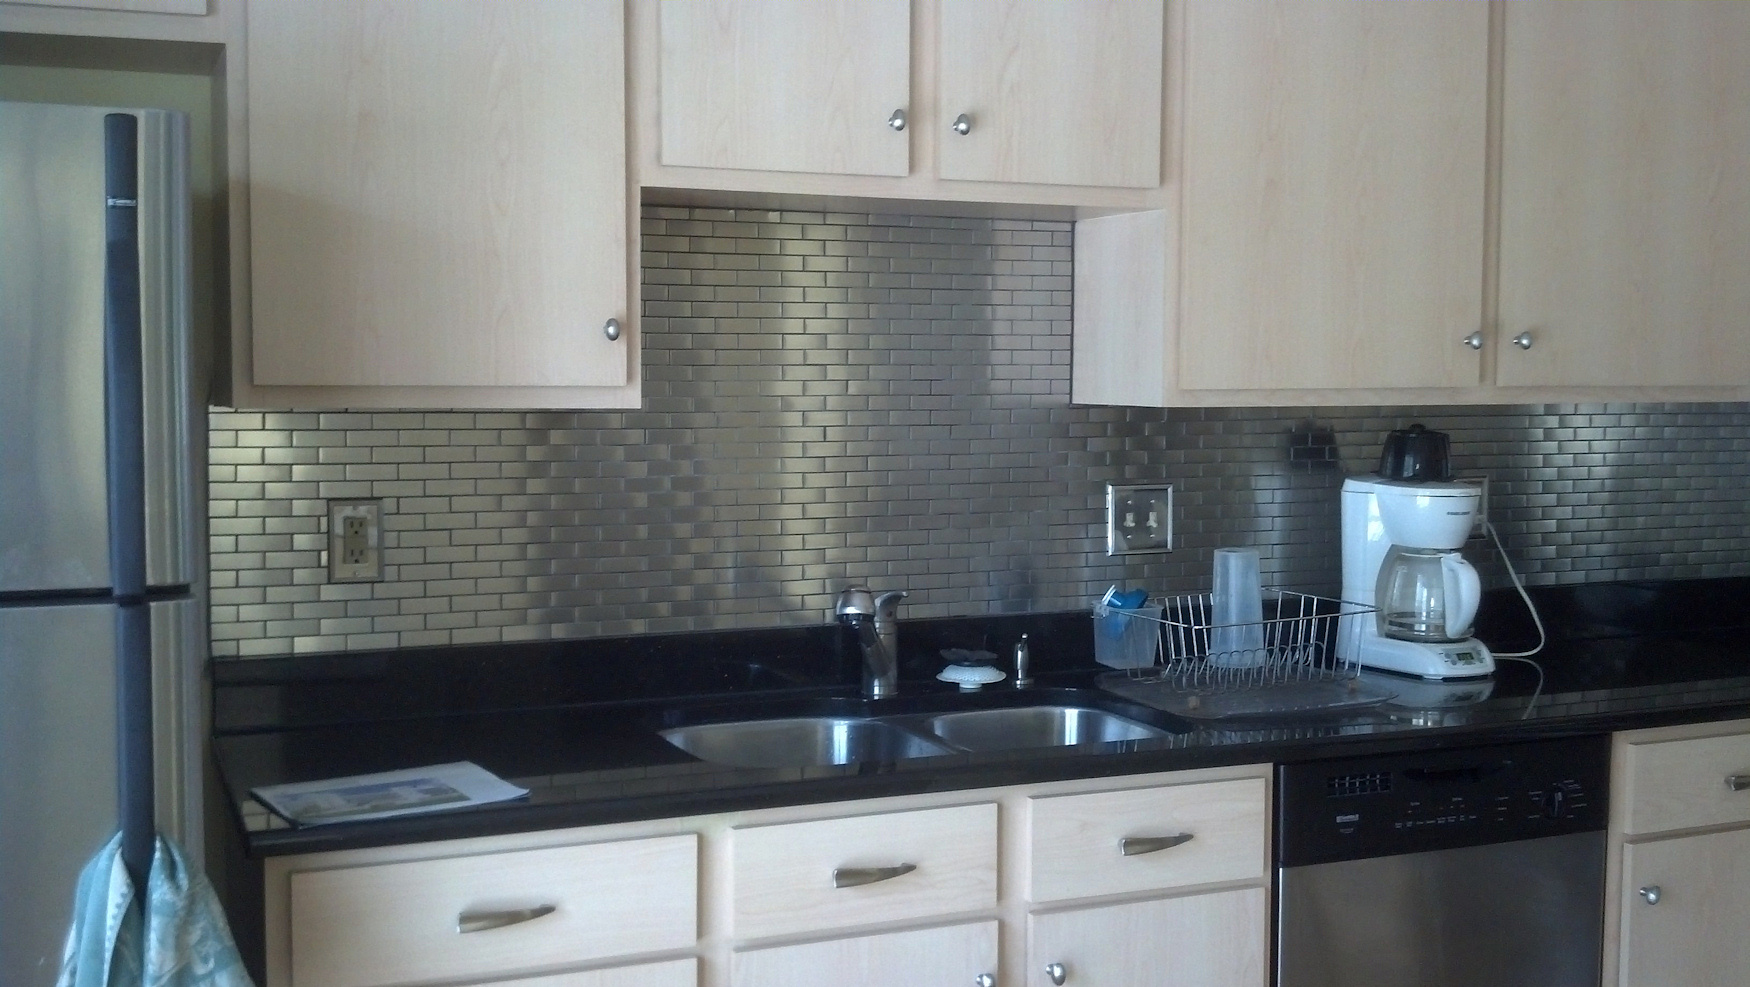 Video Kitchen Backsplash